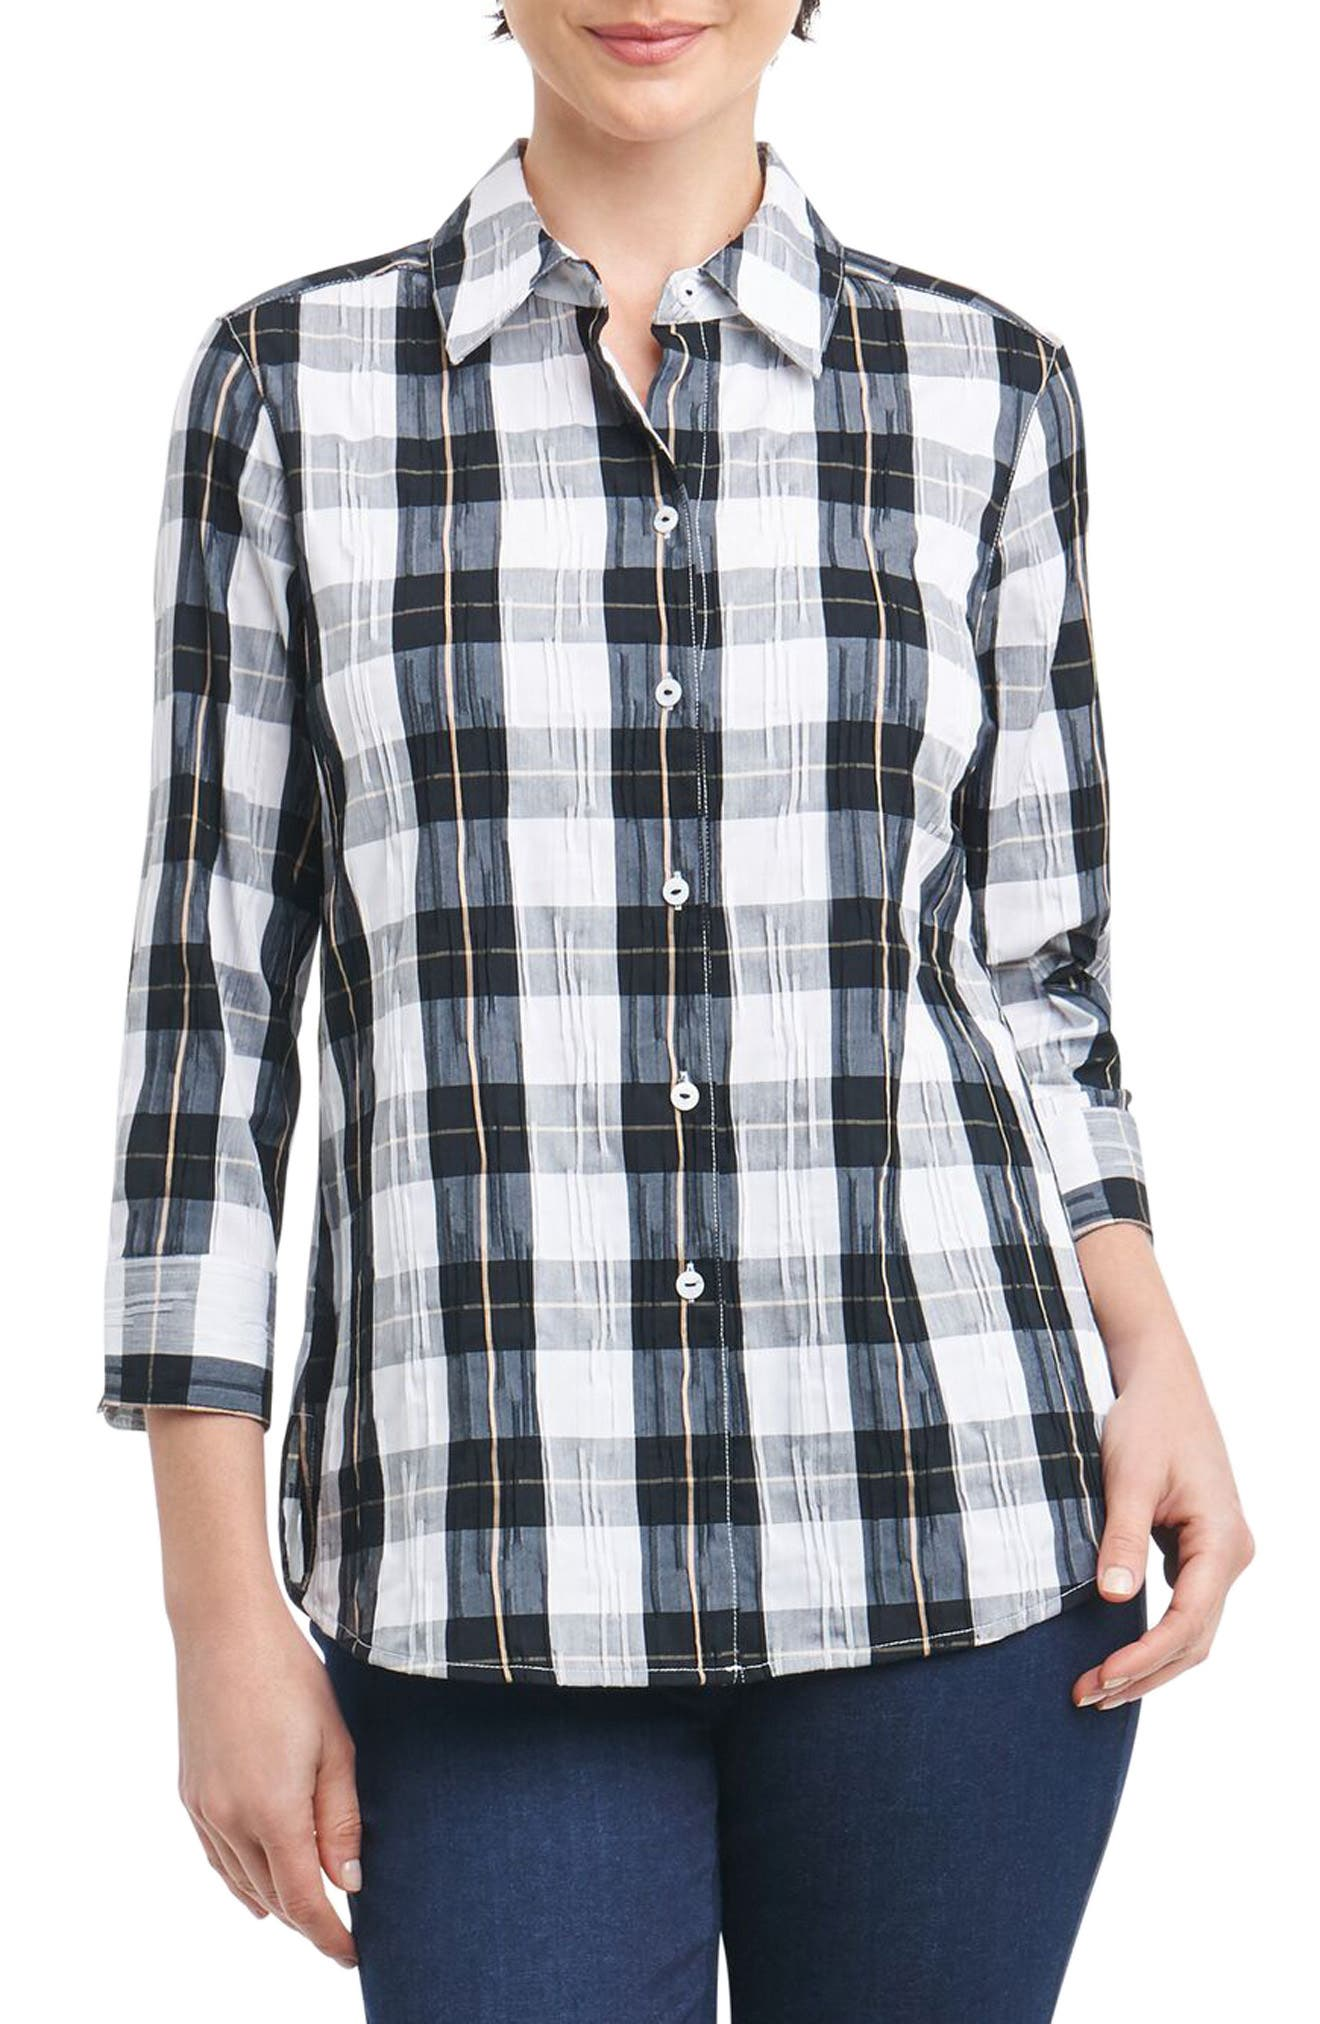 Foxcroft Sue Shaped Fit Crinkle Plaid Shirt (Regular & Petite)